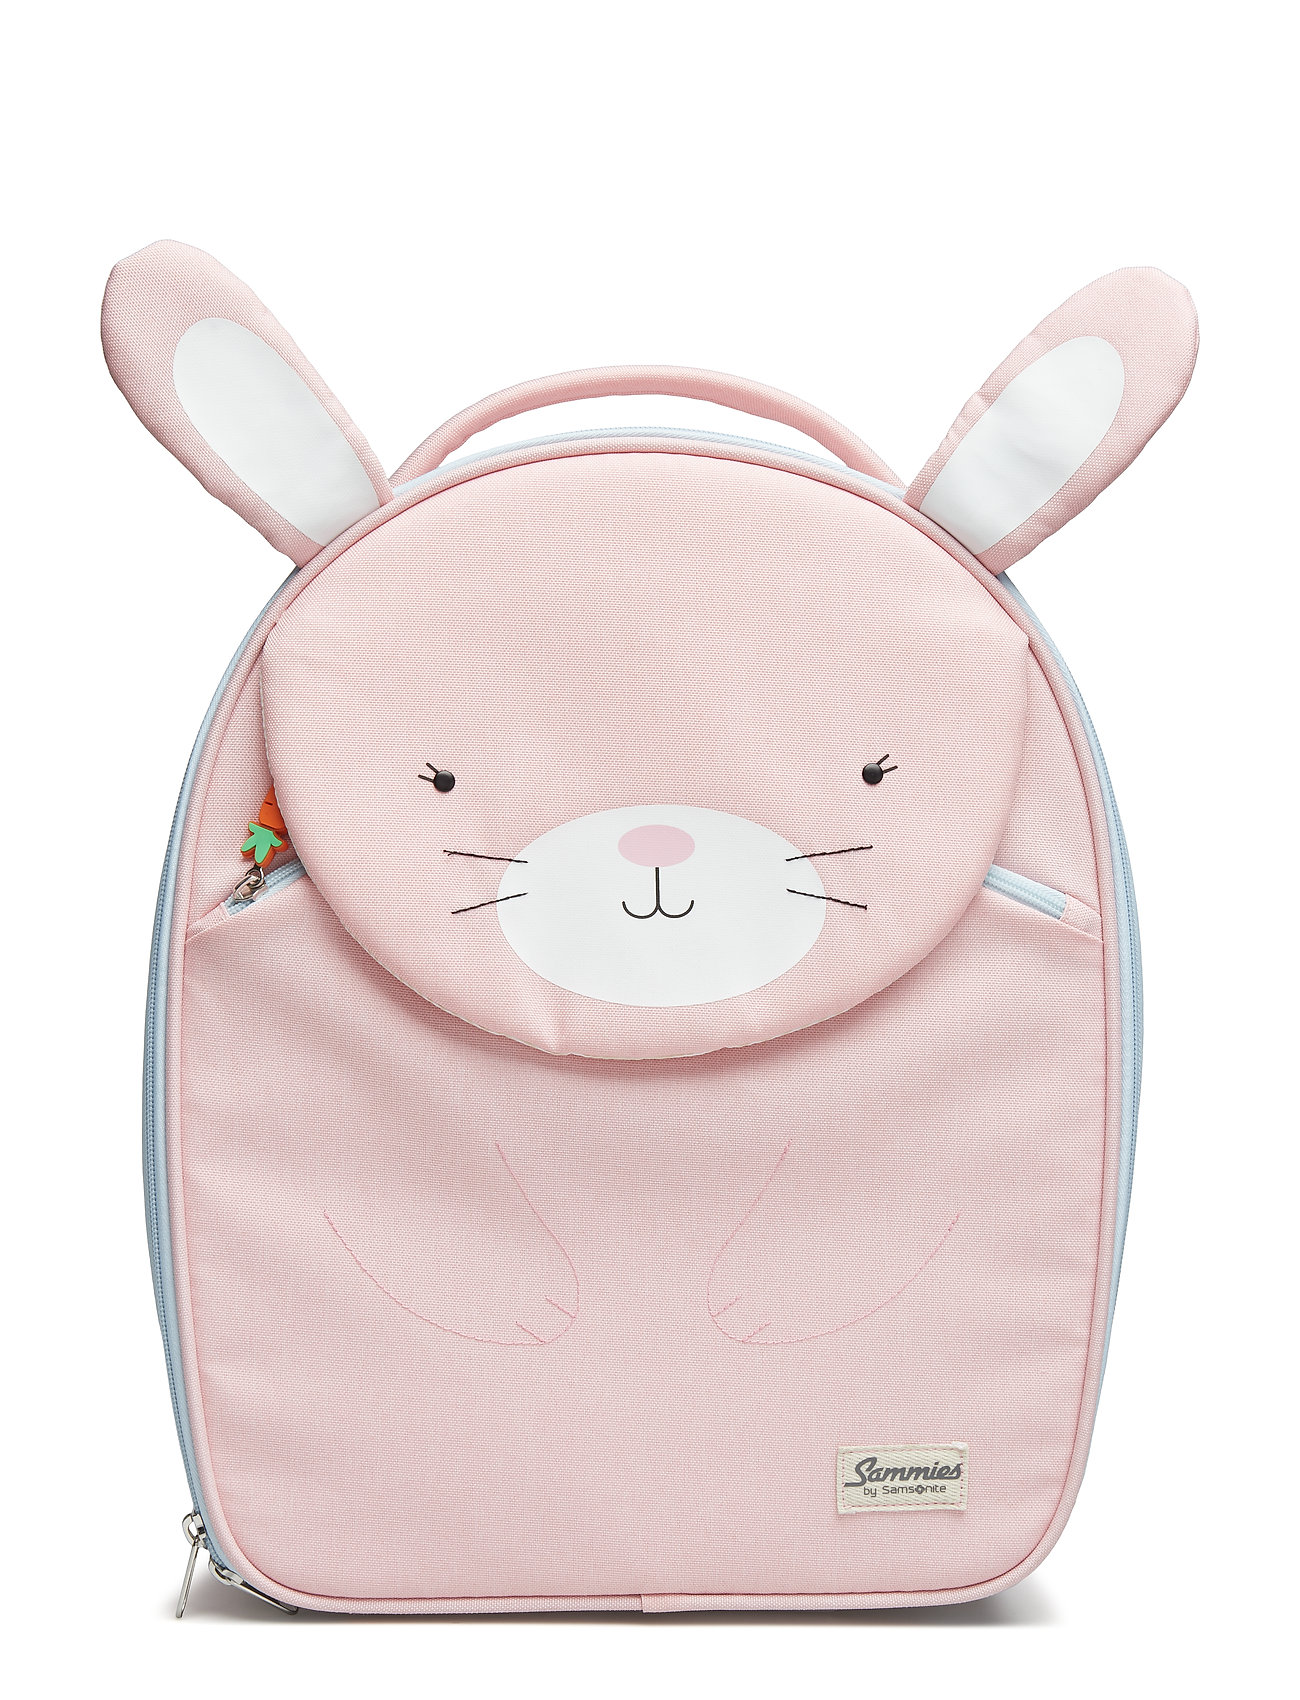 Samsonite Happy Sammies Upright 45 Rabbit Rosie - RABBIT ROSIE